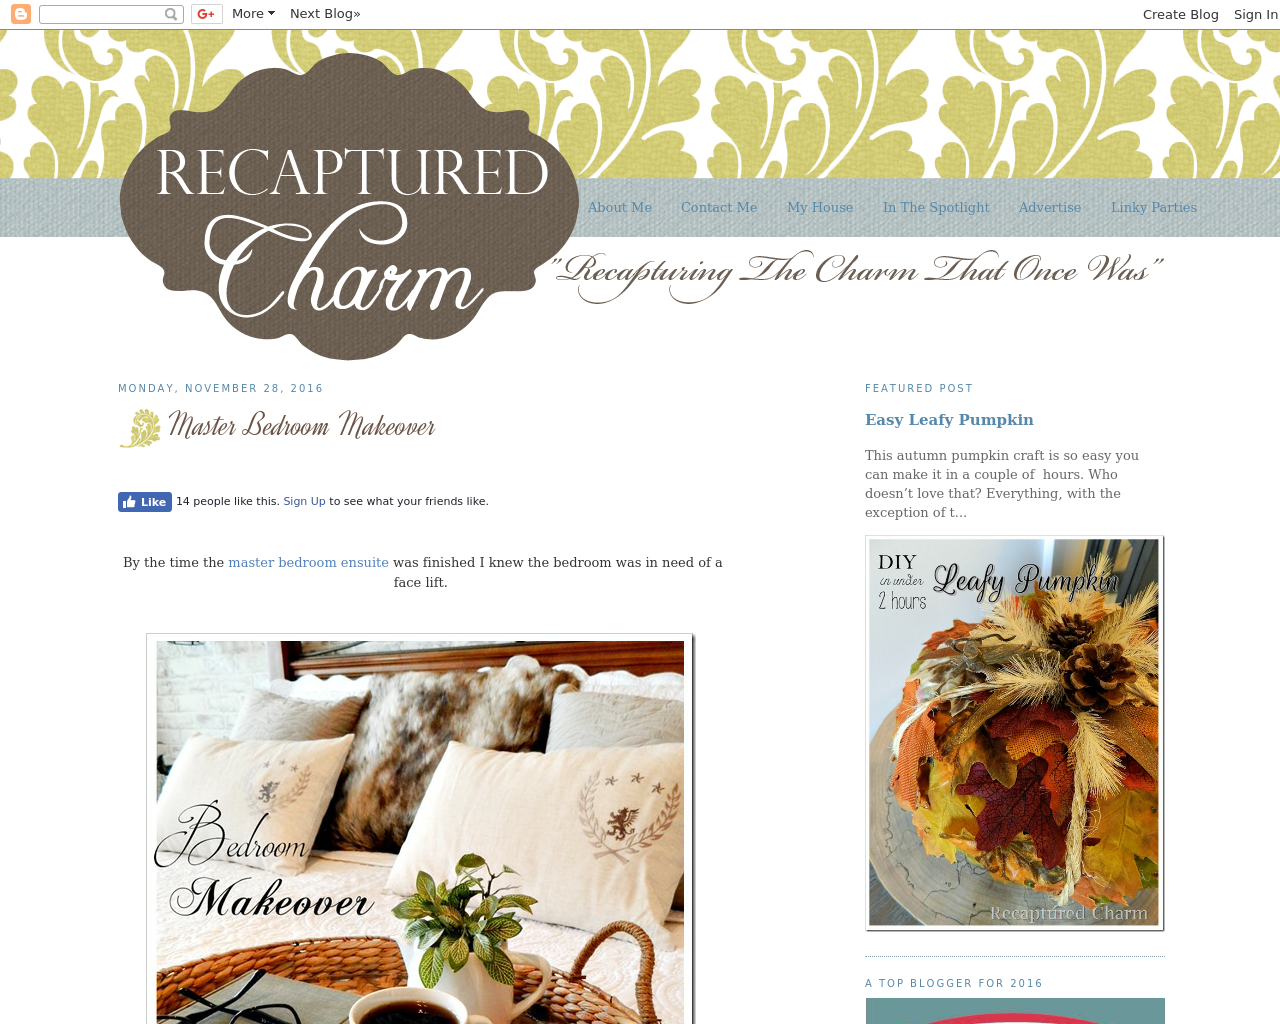 Recaptured-Charm-Advertising-Reviews-Pricing